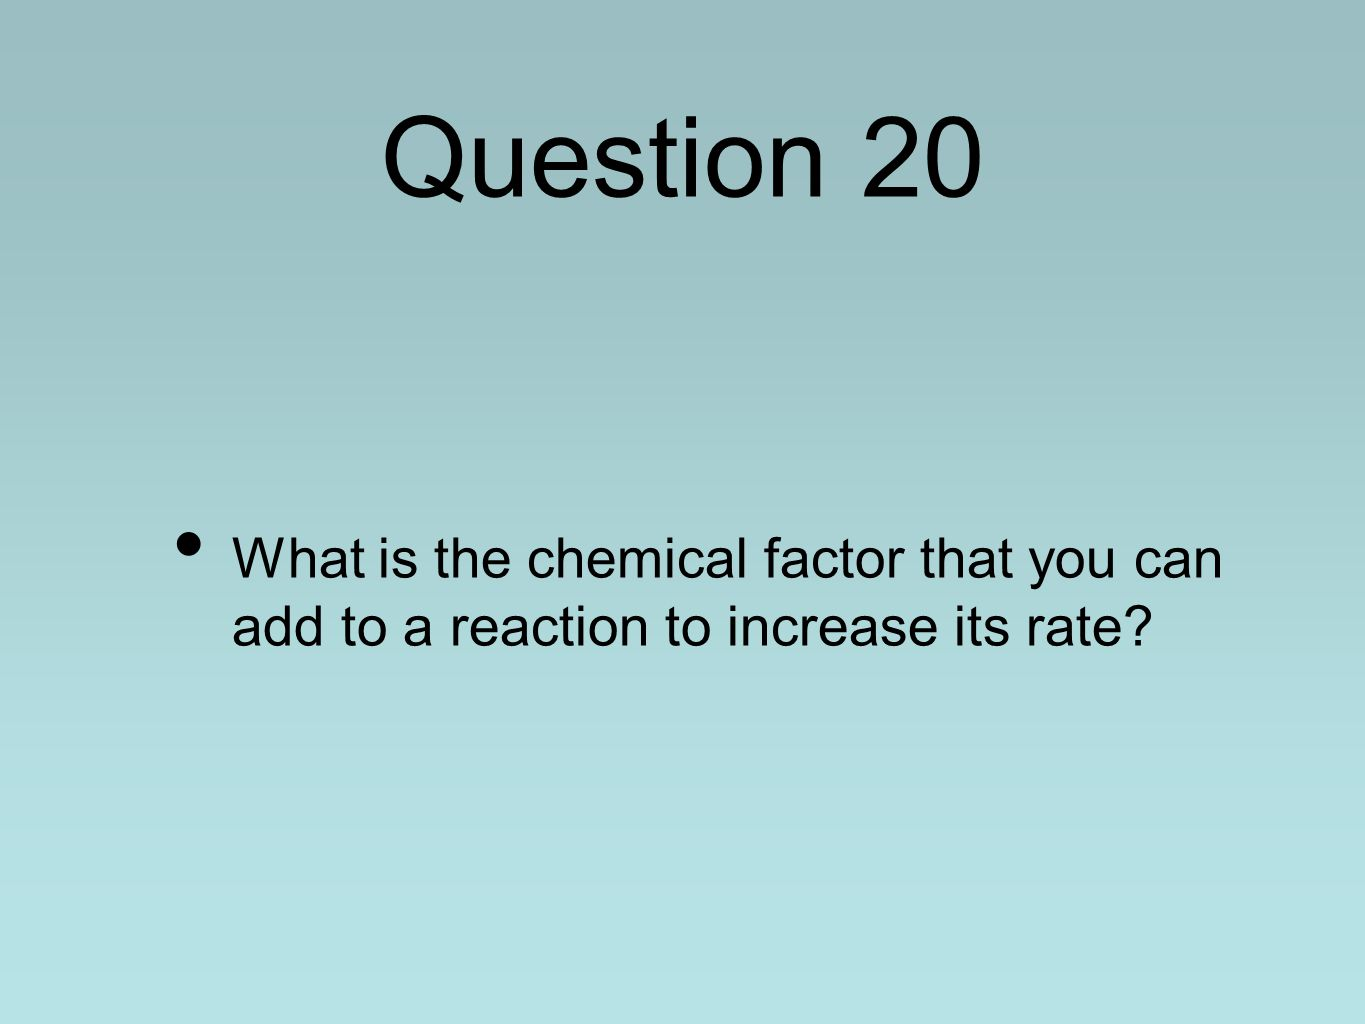 Question 20 What is the chemical factor that you can add to a reaction to increase its rate?